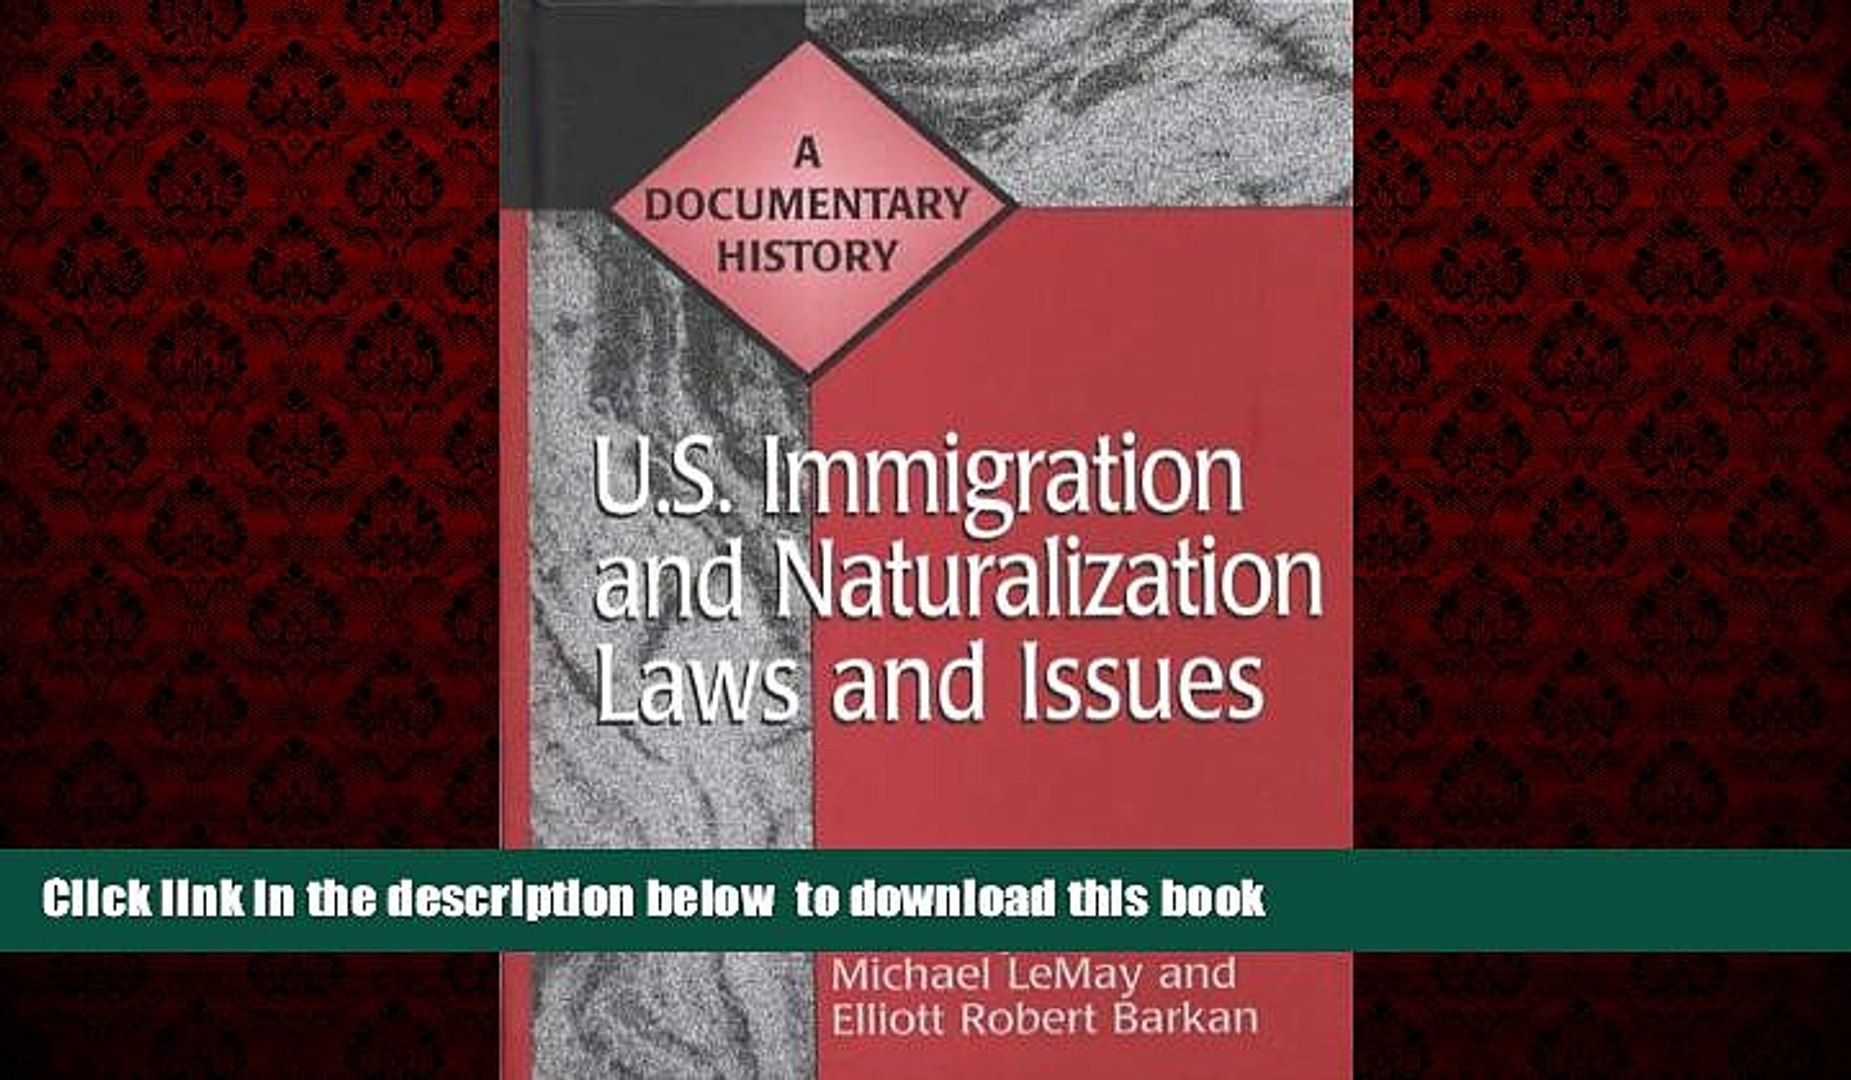 Audiobook U.S. Immigration and Naturalization Laws and Issues: A Documentary History (Primary